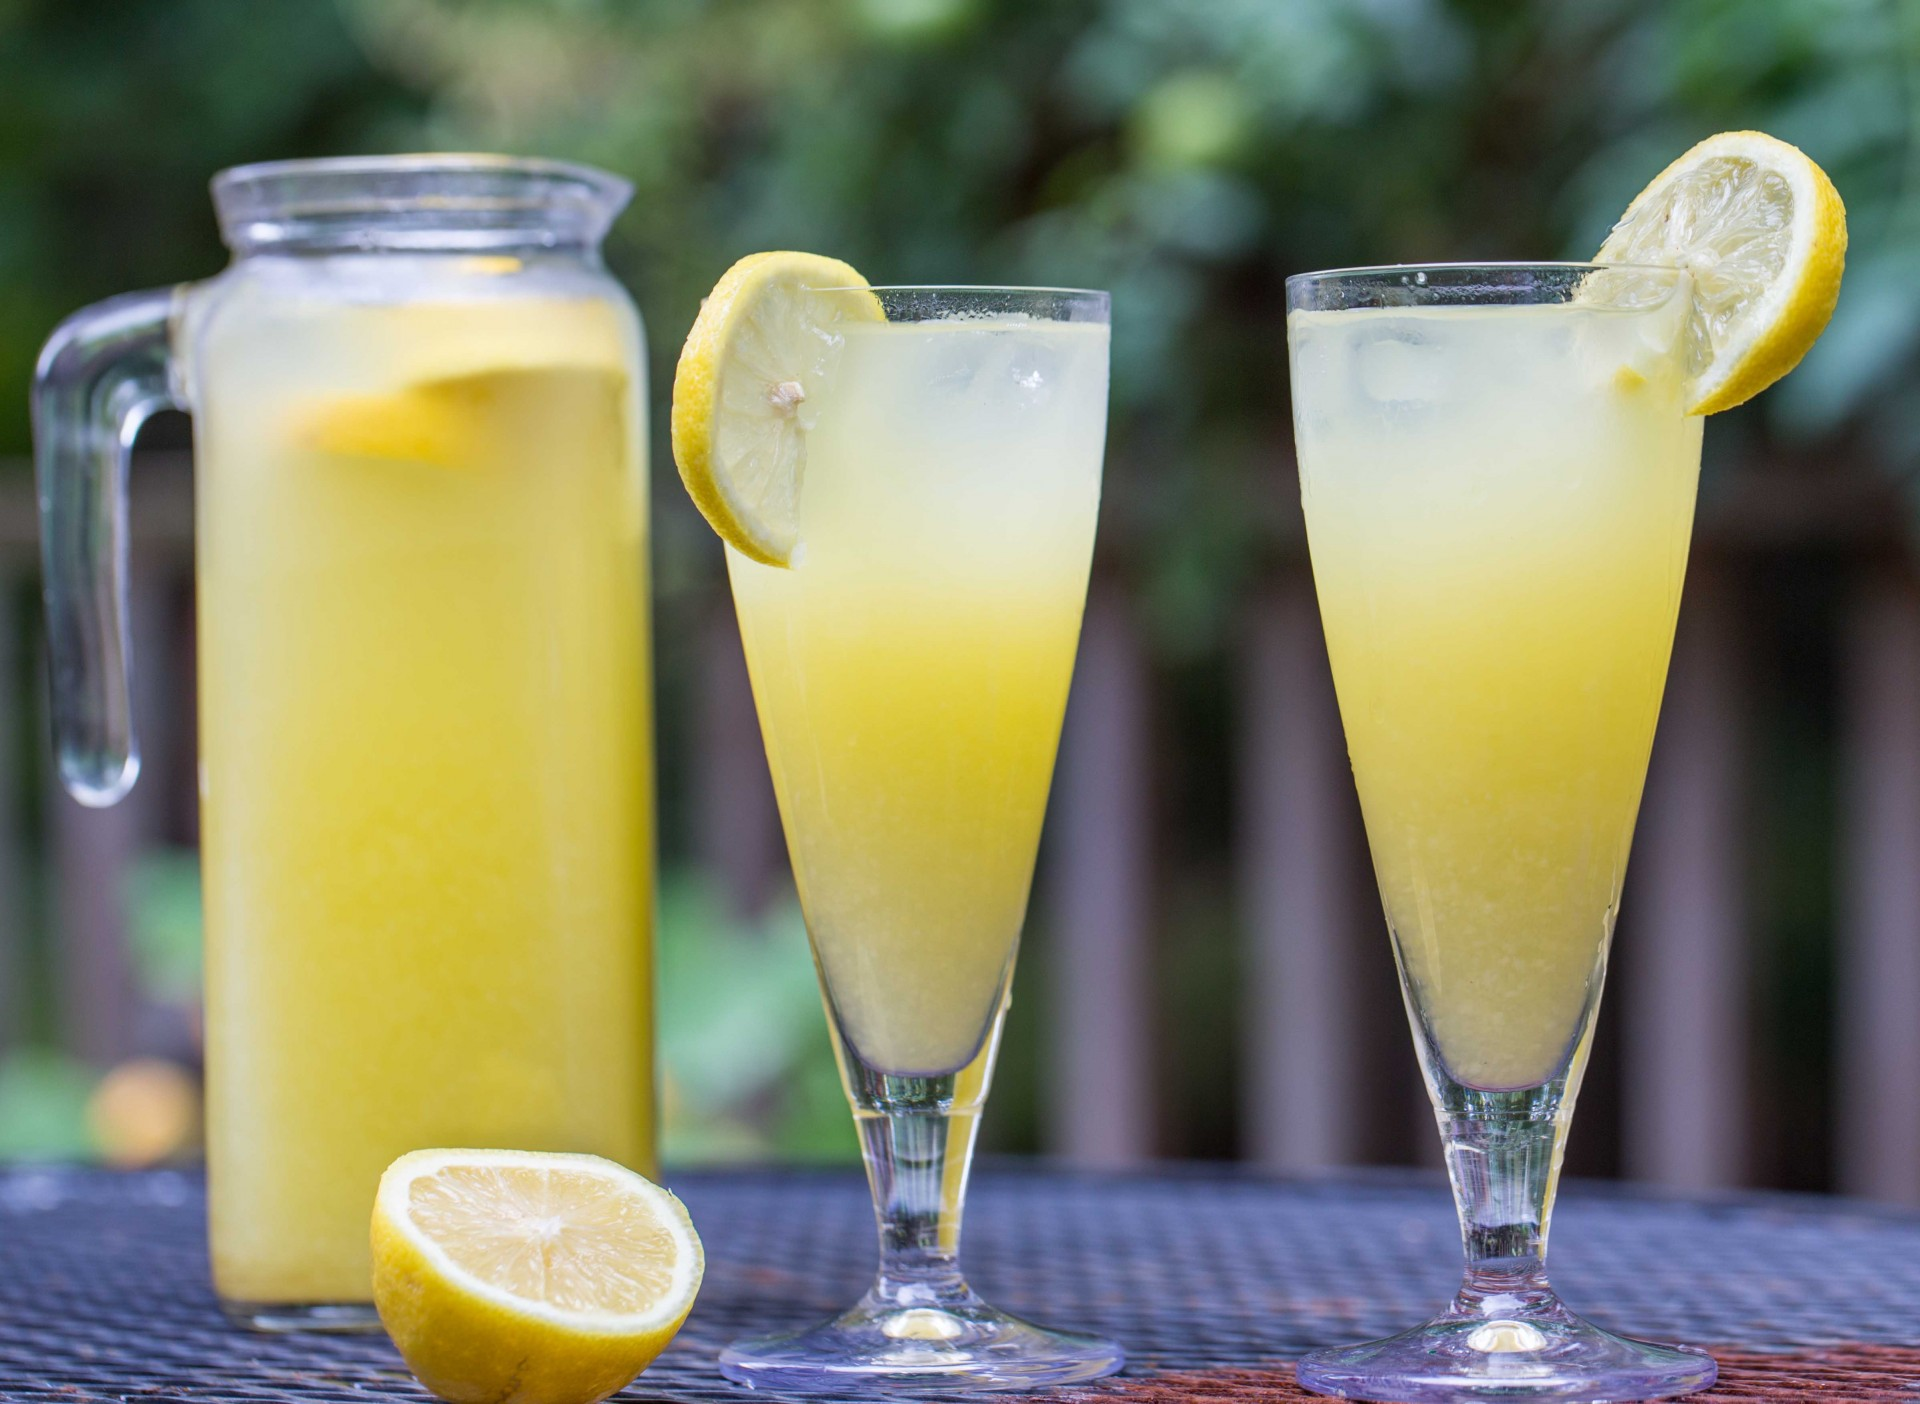 Homemade Mango Lemonade - Overtime Cook